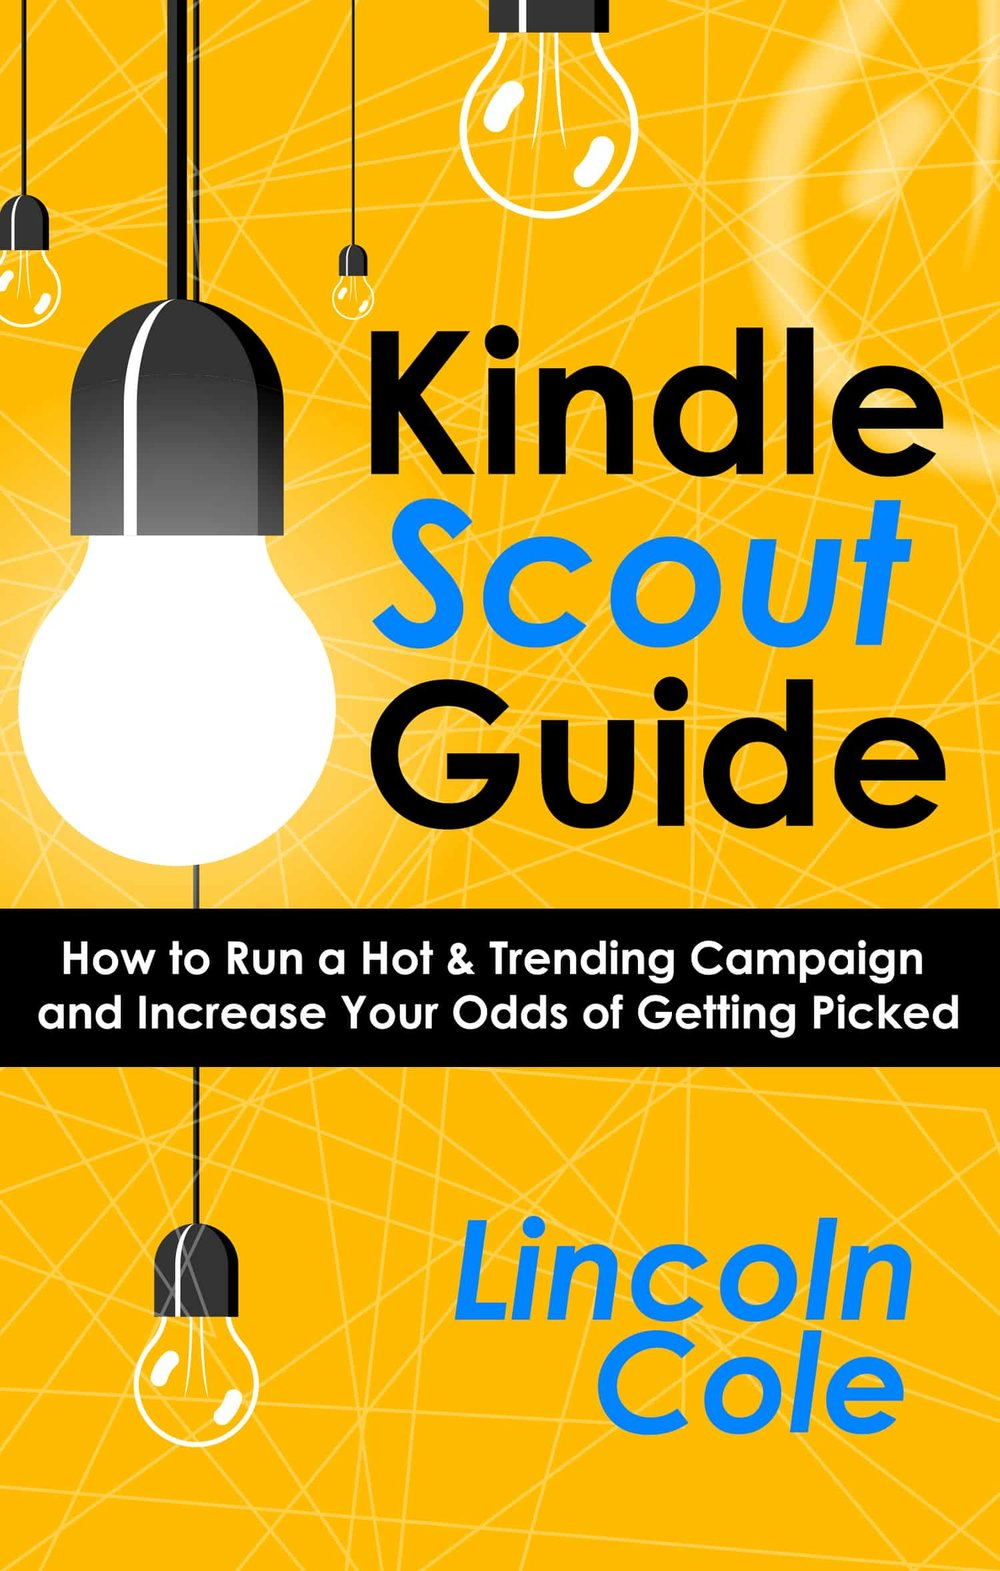 Kindle Scout Guide - There are hundreds of authors entering the program every month and trying their hand at earning a contract to become a Kindle Press Author. Don't just be another newbie submitting their book and hoping for the best: get an edge over the competition and give your book a real chance to shine and become one of the 3% of books to get selected.The information contained in this guide will help you launch and run a campaign based on the compiled advice of dozens of selected authors, as well as analysis of paid and free options to increase your campaign's visibility.